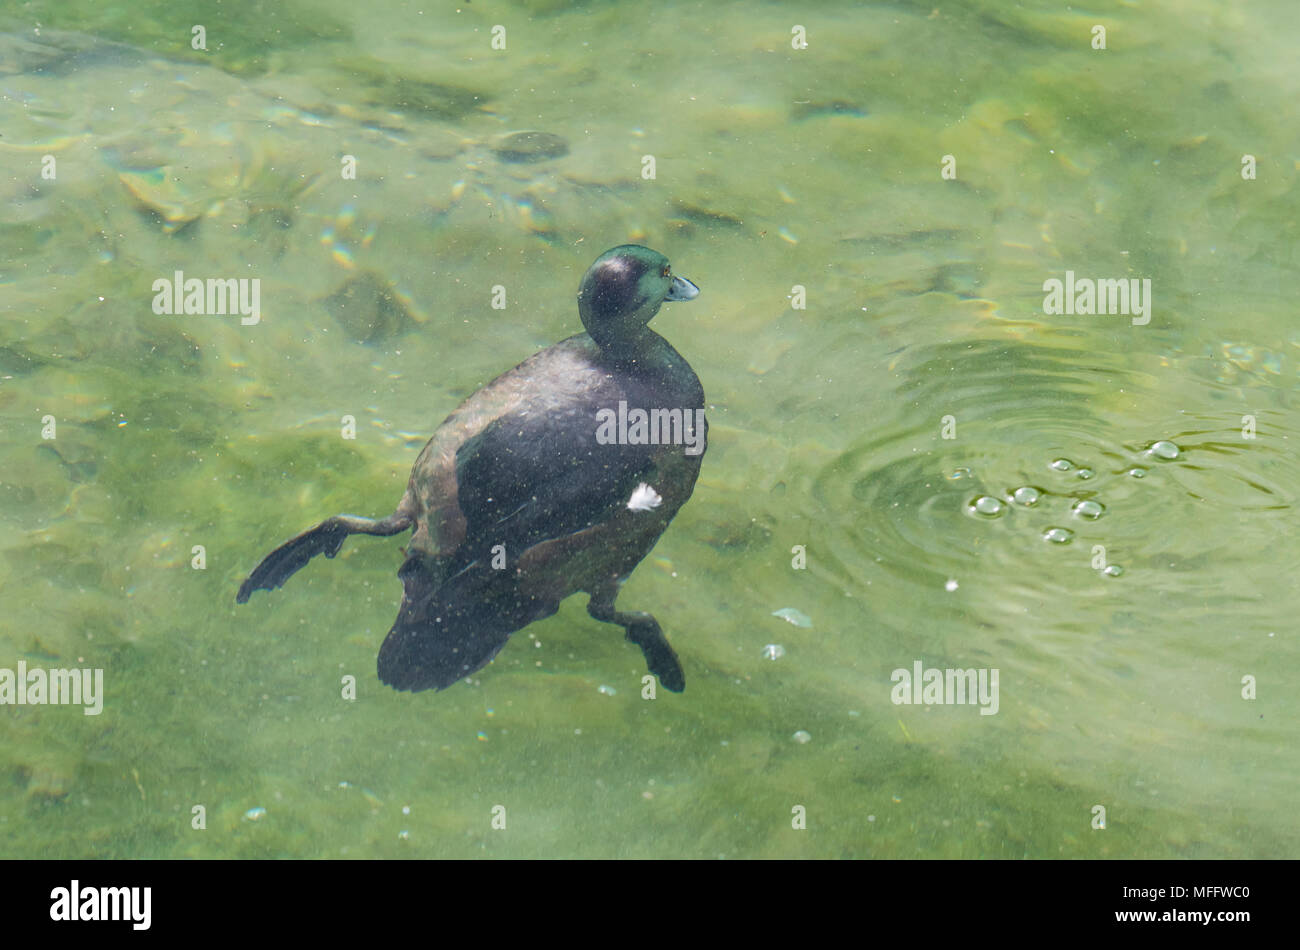 Eurasian Coot (Fulica atra), a water bird, completely submerged and swimming under water in West Sussex, England, UK. - Stock Image